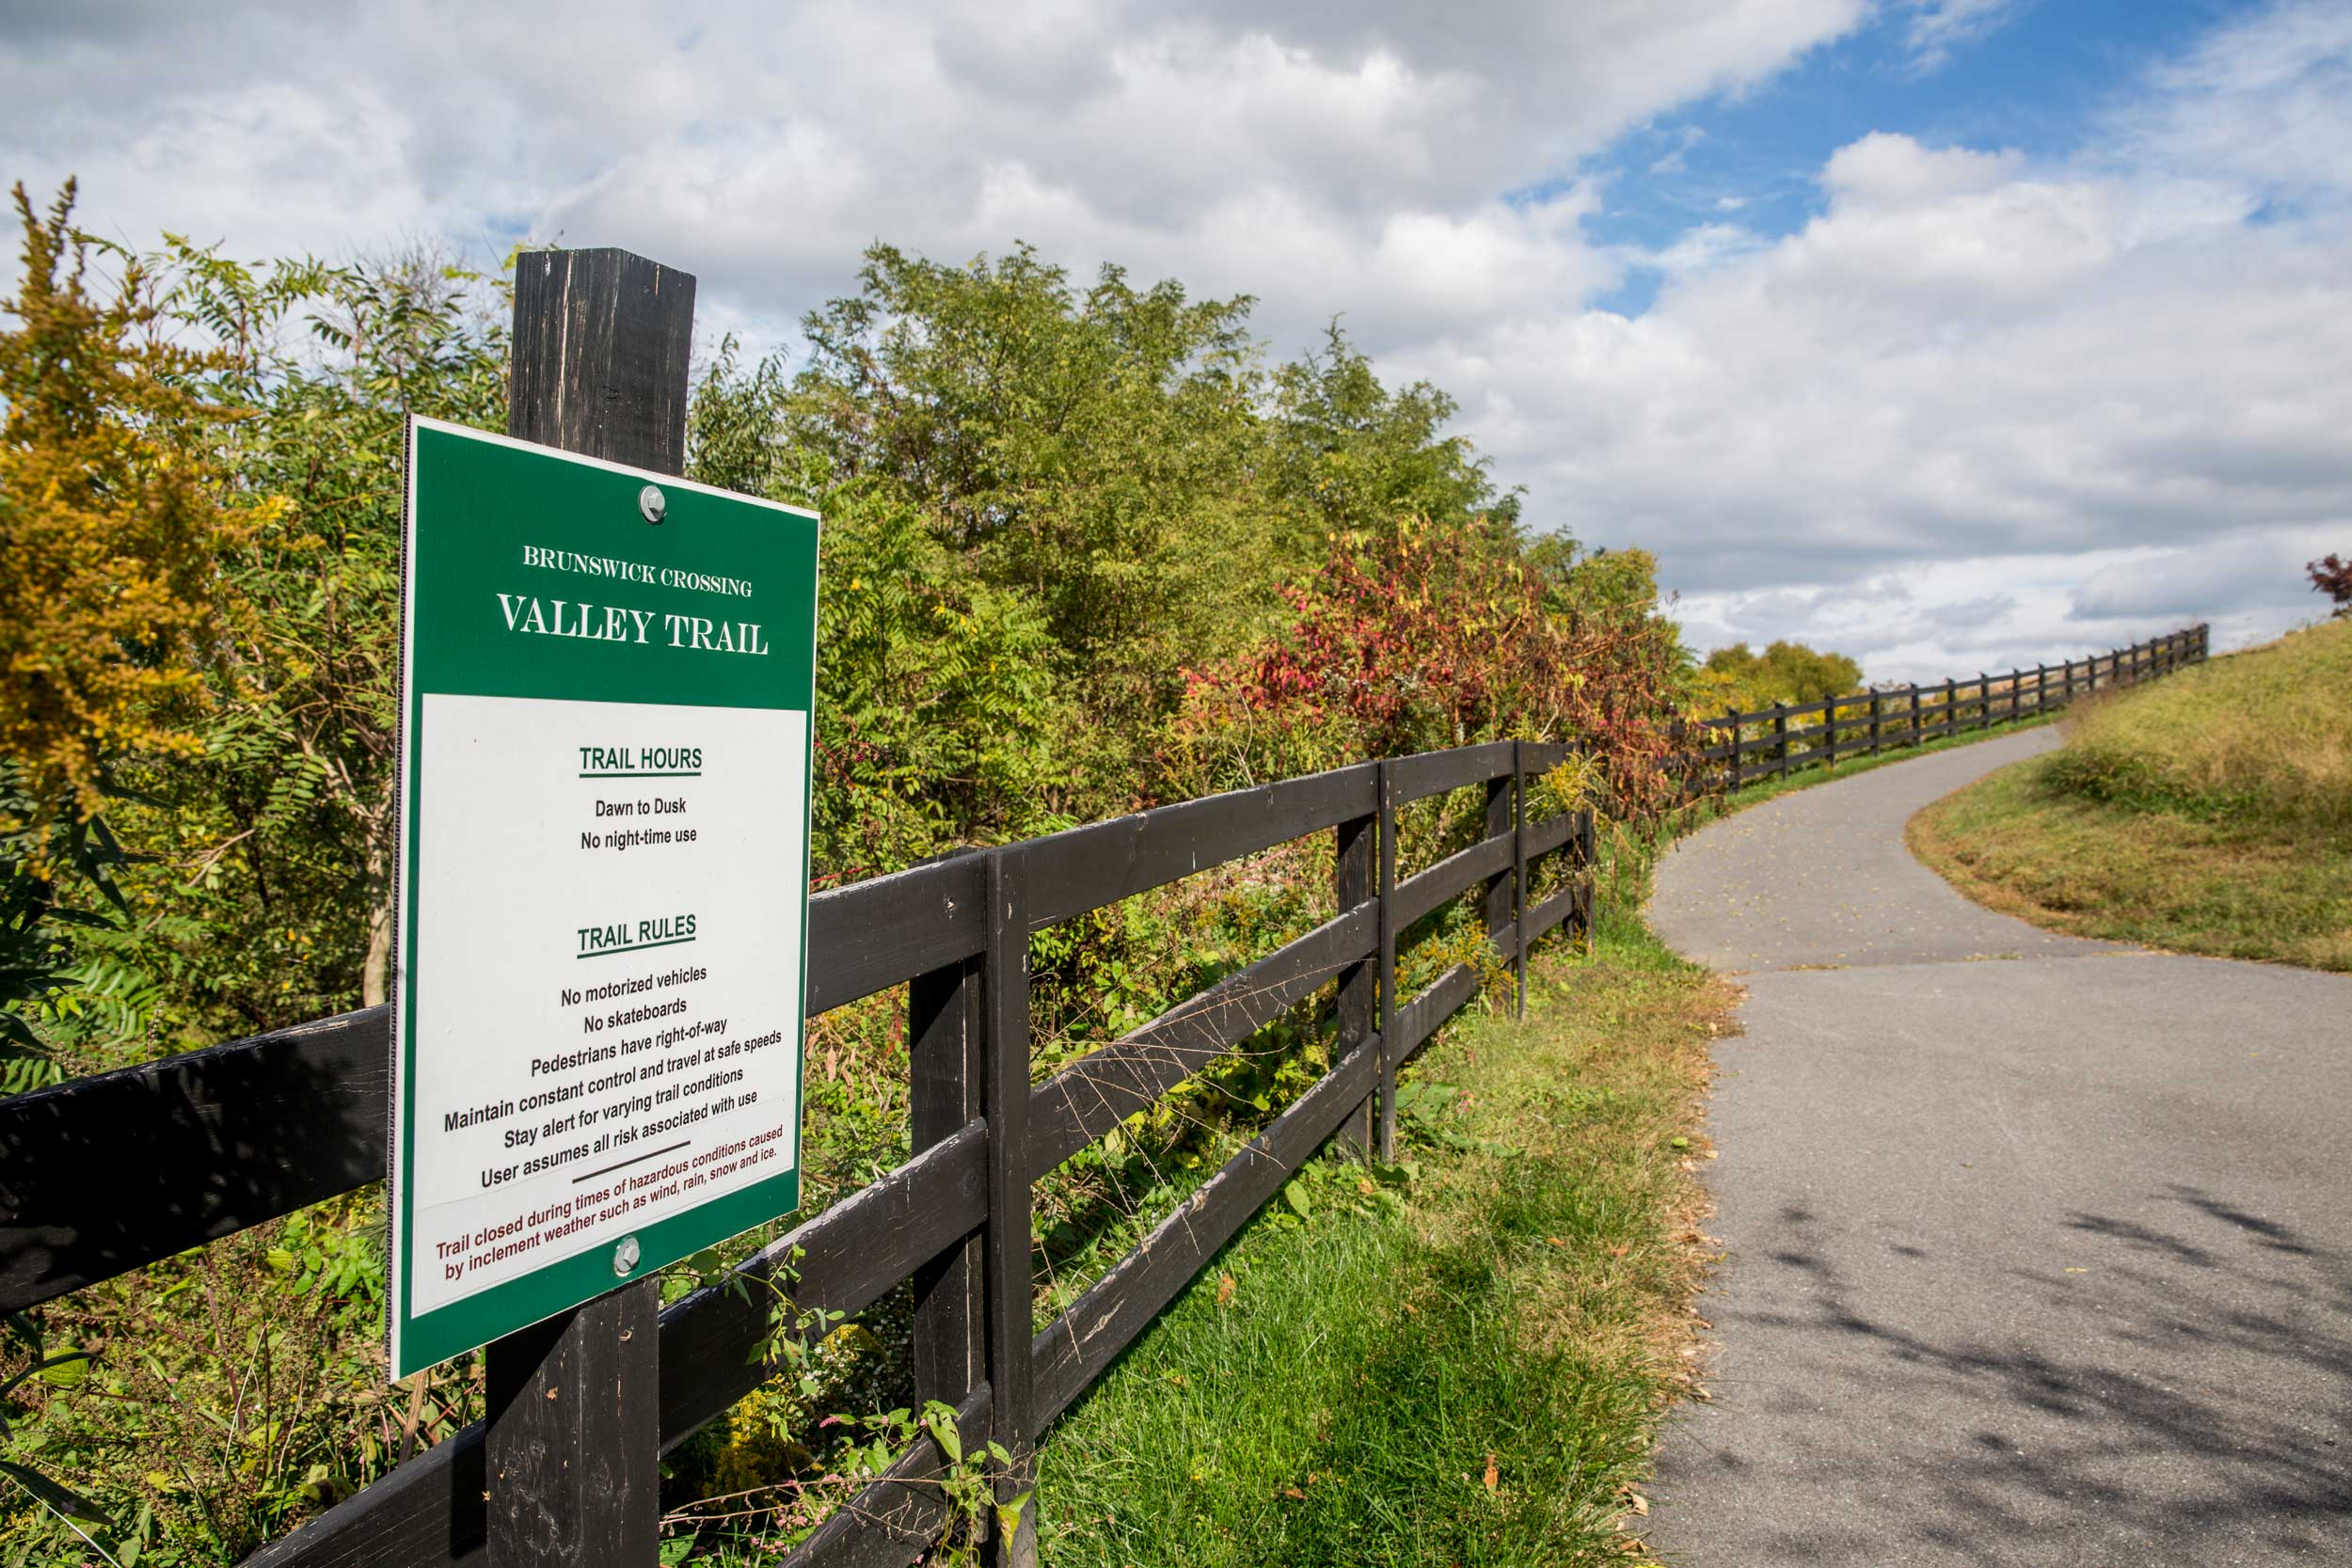 Brunswick Crossing New Homes Valley Trail System offers 26 miles of paved trails in Frederick County Maryland